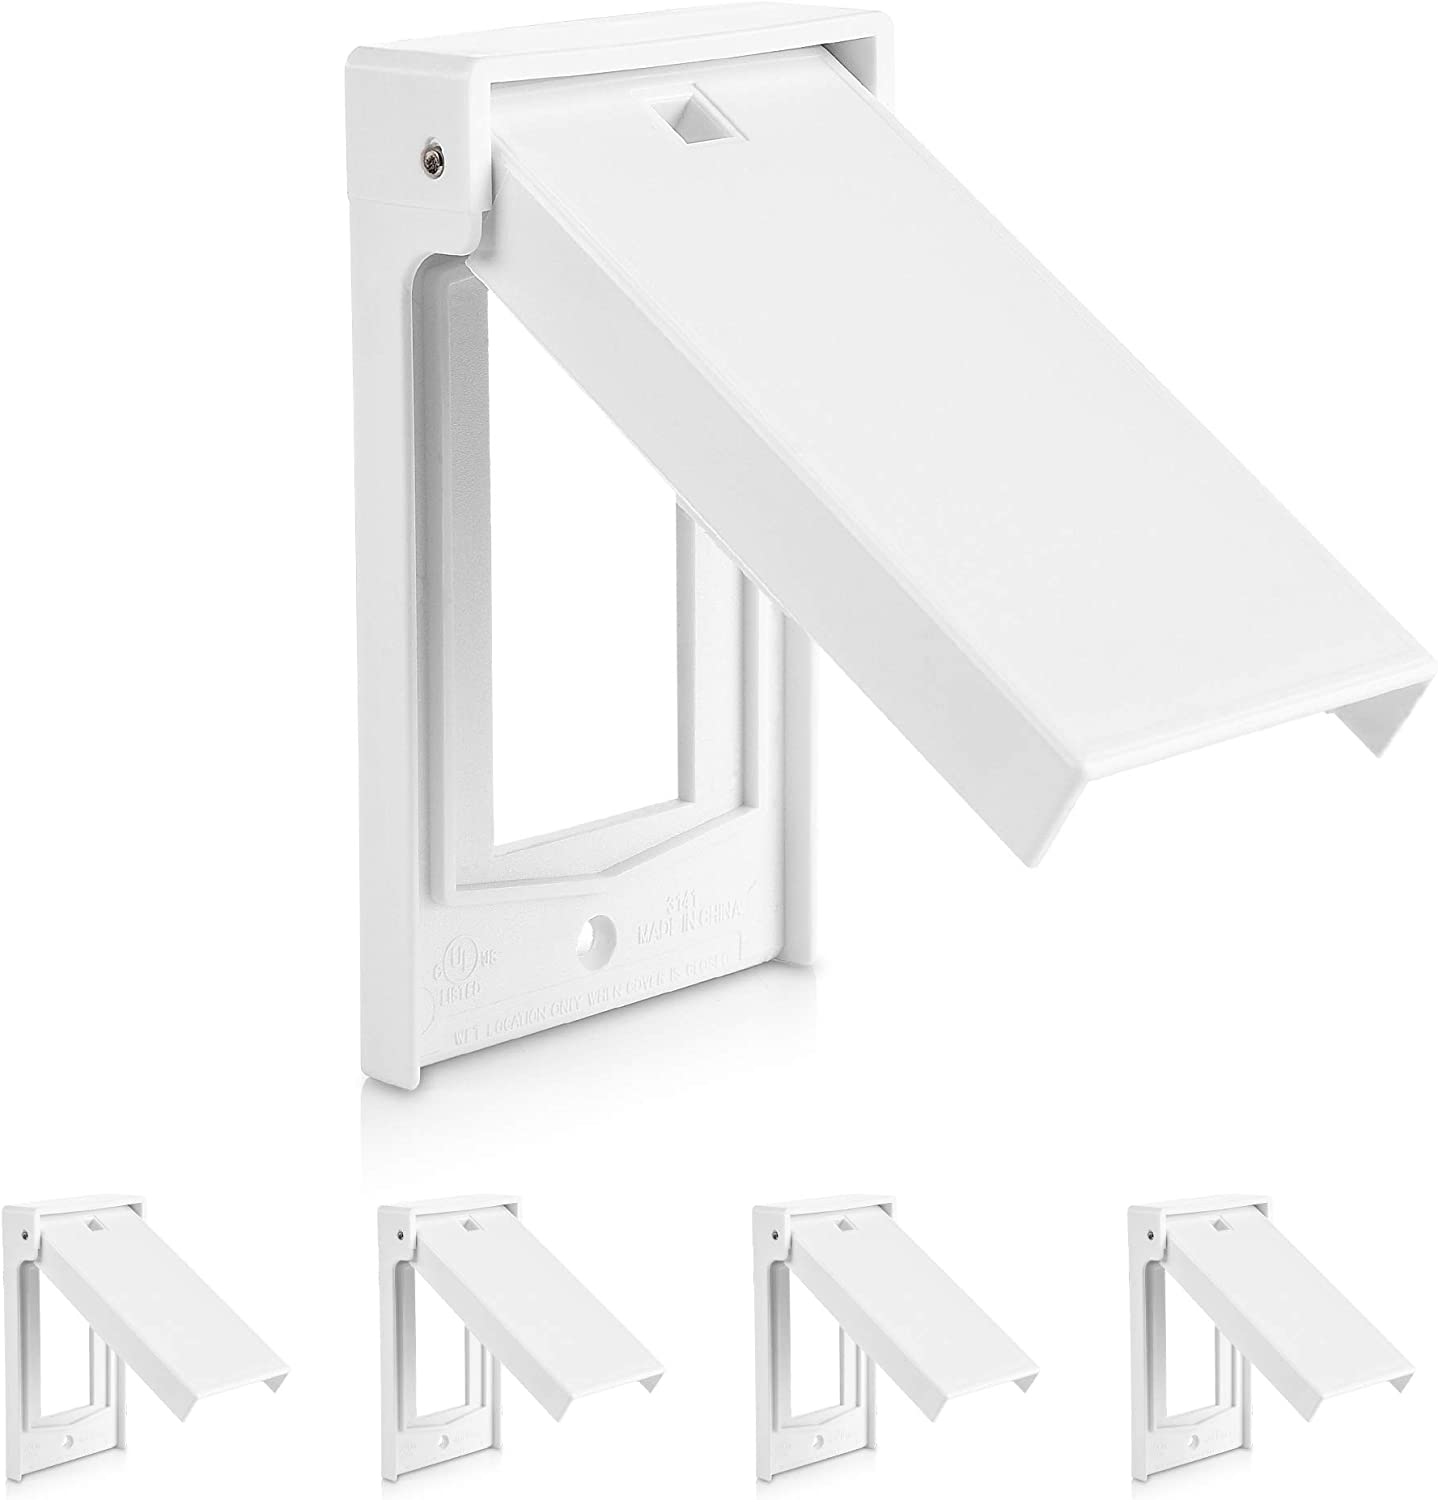 Cable Matters UL Listed 5-Pack Weather Resistant Decorator Device Wall Plate, Vertical Outdoor Switch Cover in White